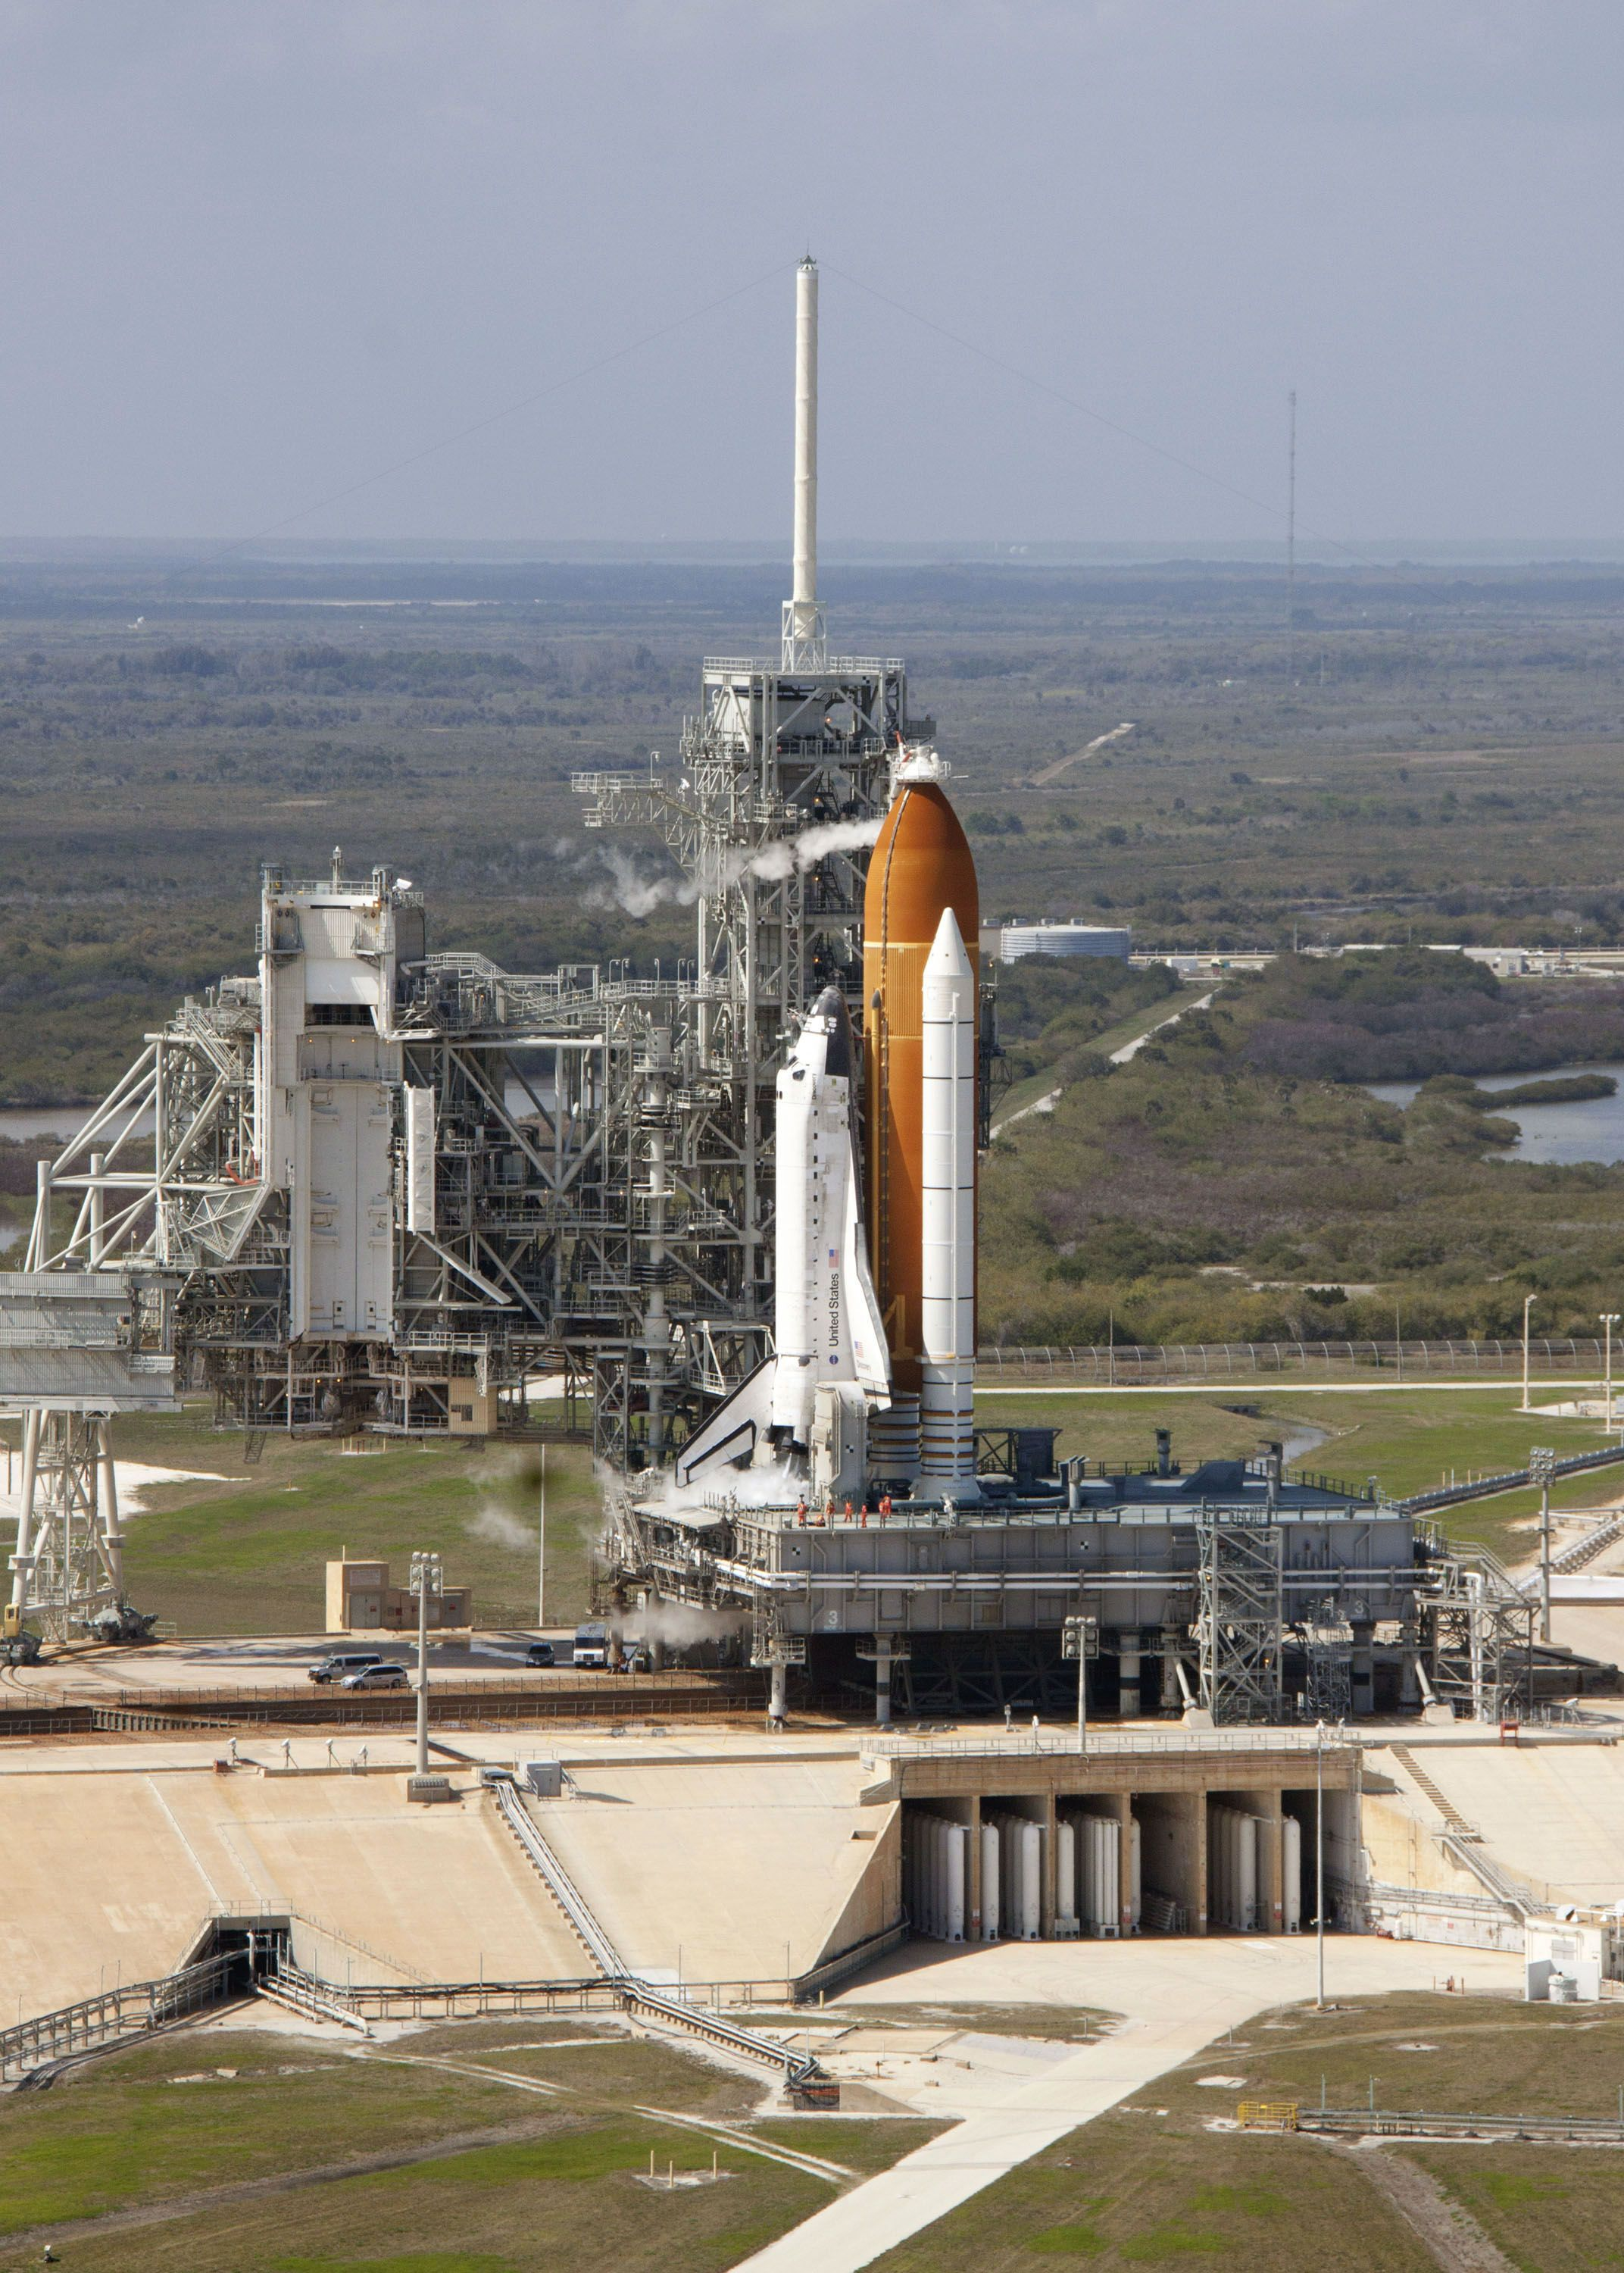 pad 39a launches graph - HD2144×3000